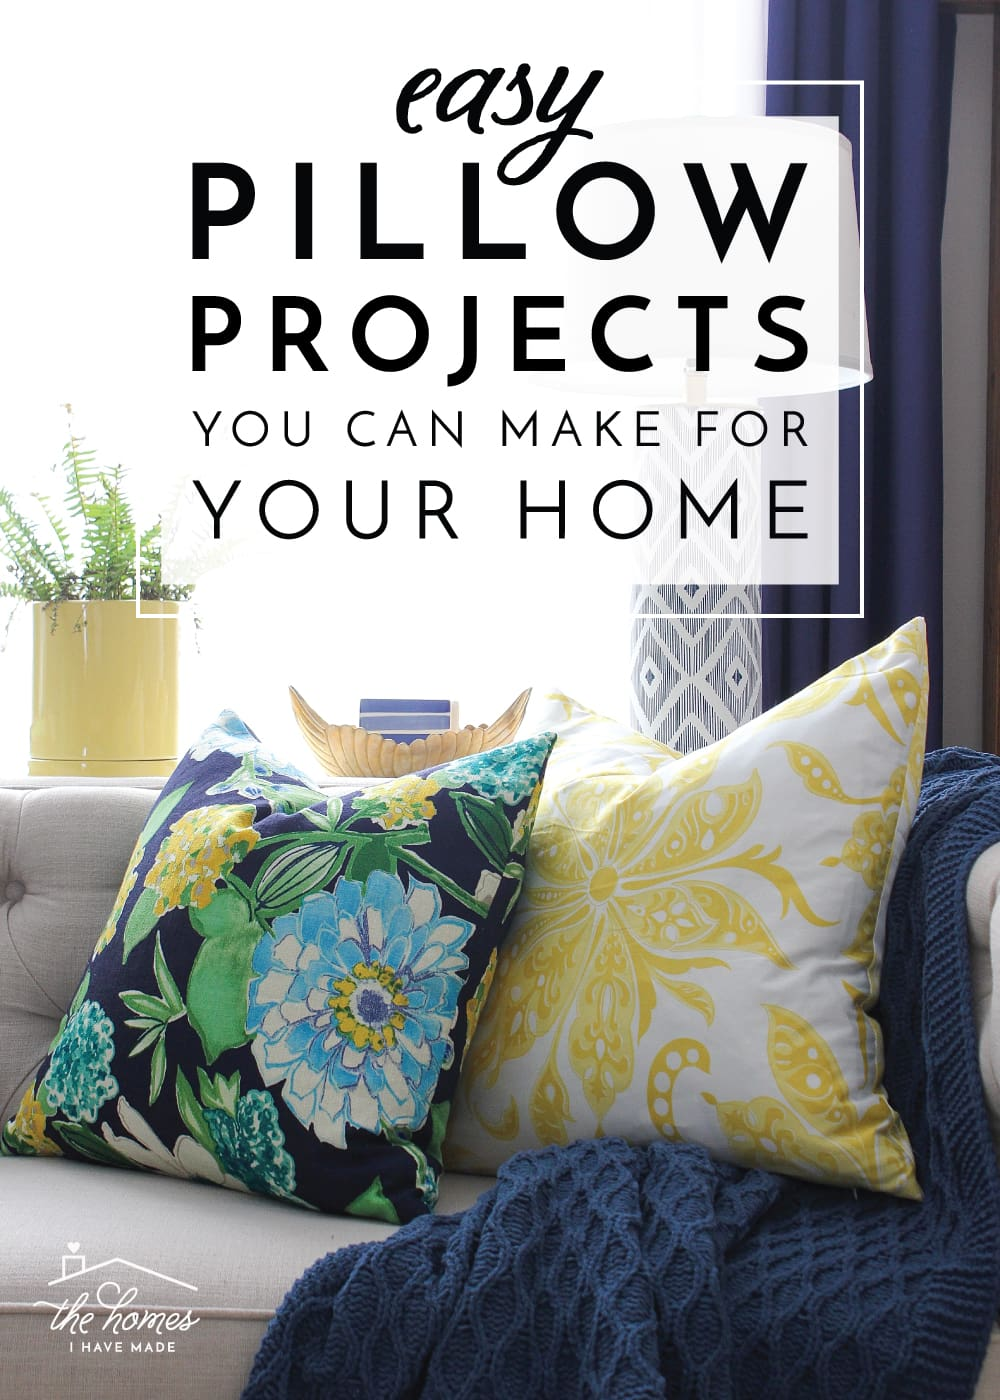 Pillows are one of the easiest ways to decorate or refresh your home, AND they are super simple and fun to make! Check out these easy DIY pillow projects you can make for your own home!